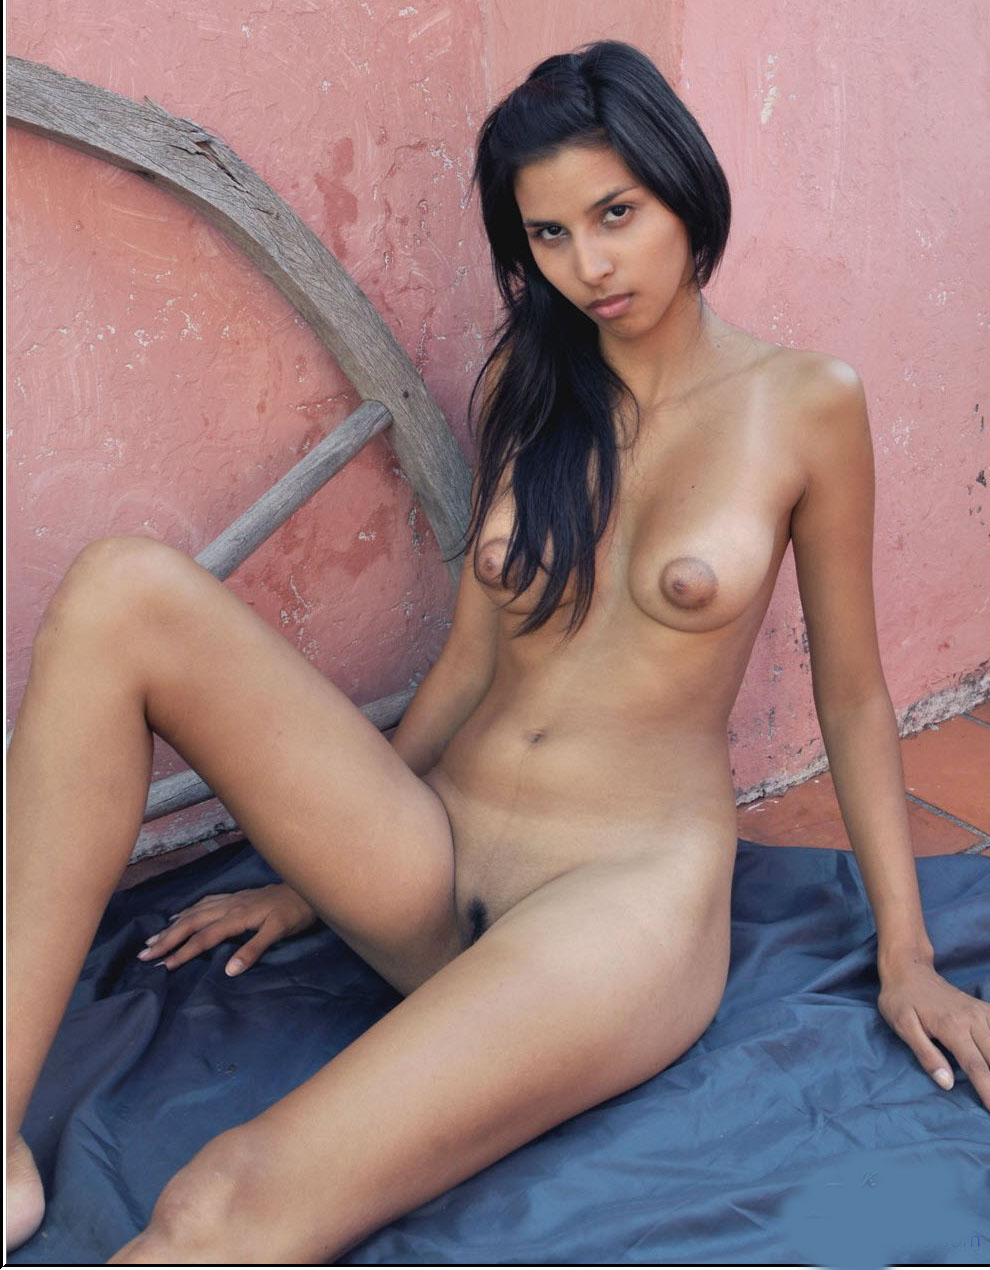 Pussy And Boobs Pictures Of Pakistani Girls - Adult Videos-4065